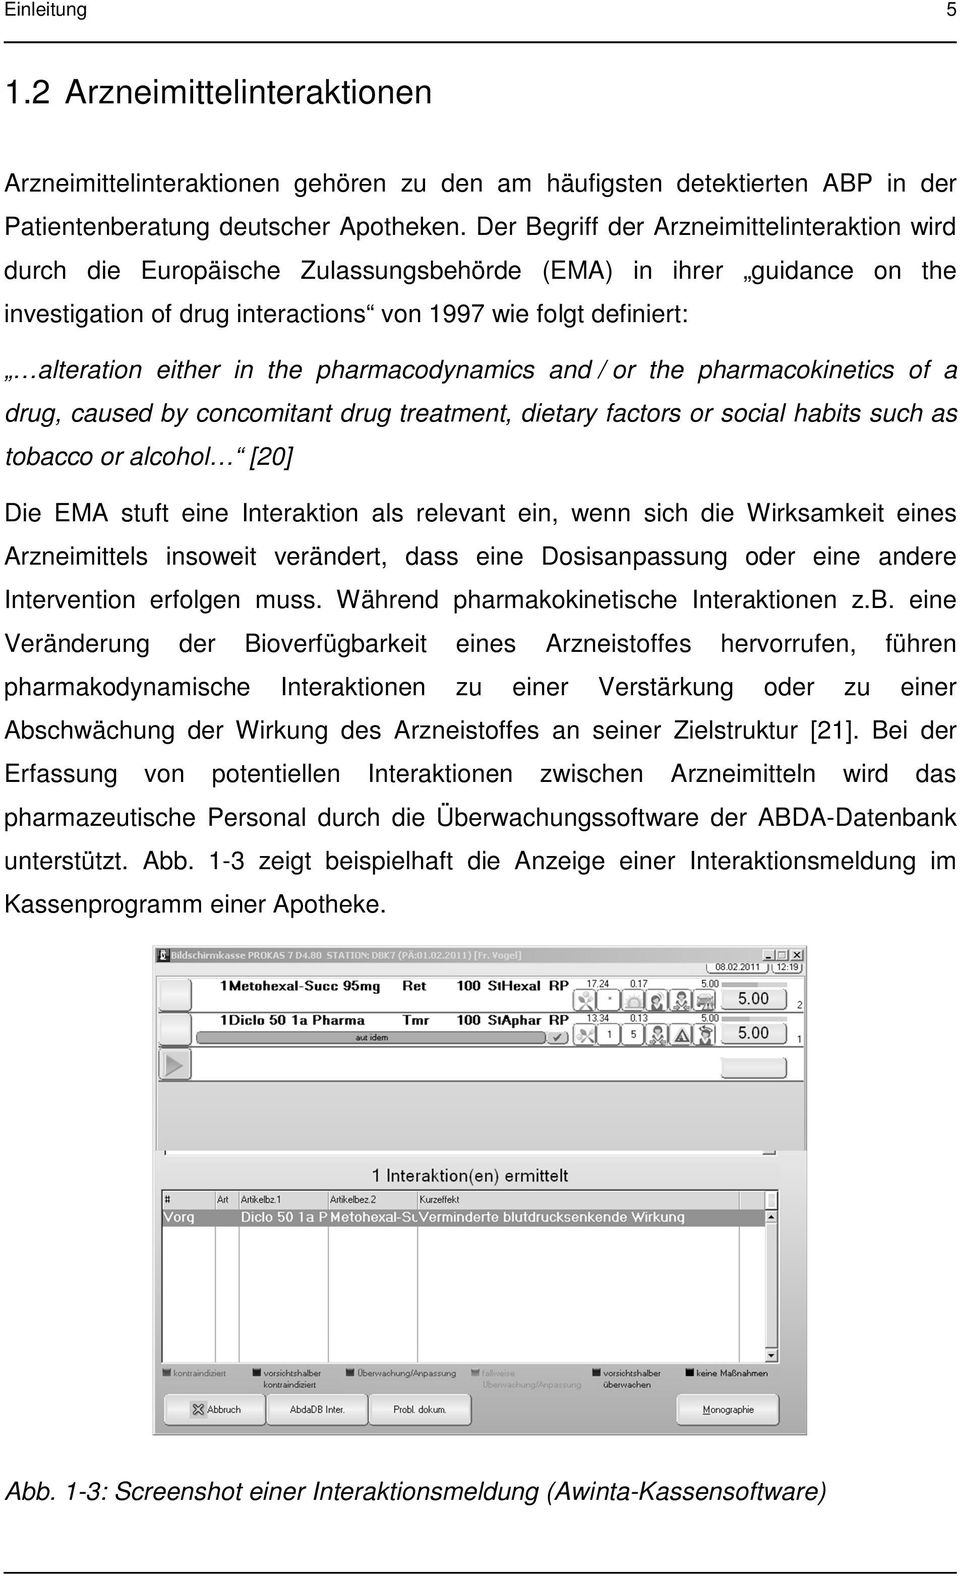 in the pharmacodynamics and / or the pharmacokinetics of a drug, caused by concomitant drug treatment, dietary factors or social habits such as tobacco or alcohol [20] Die EMA stuft eine Interaktion